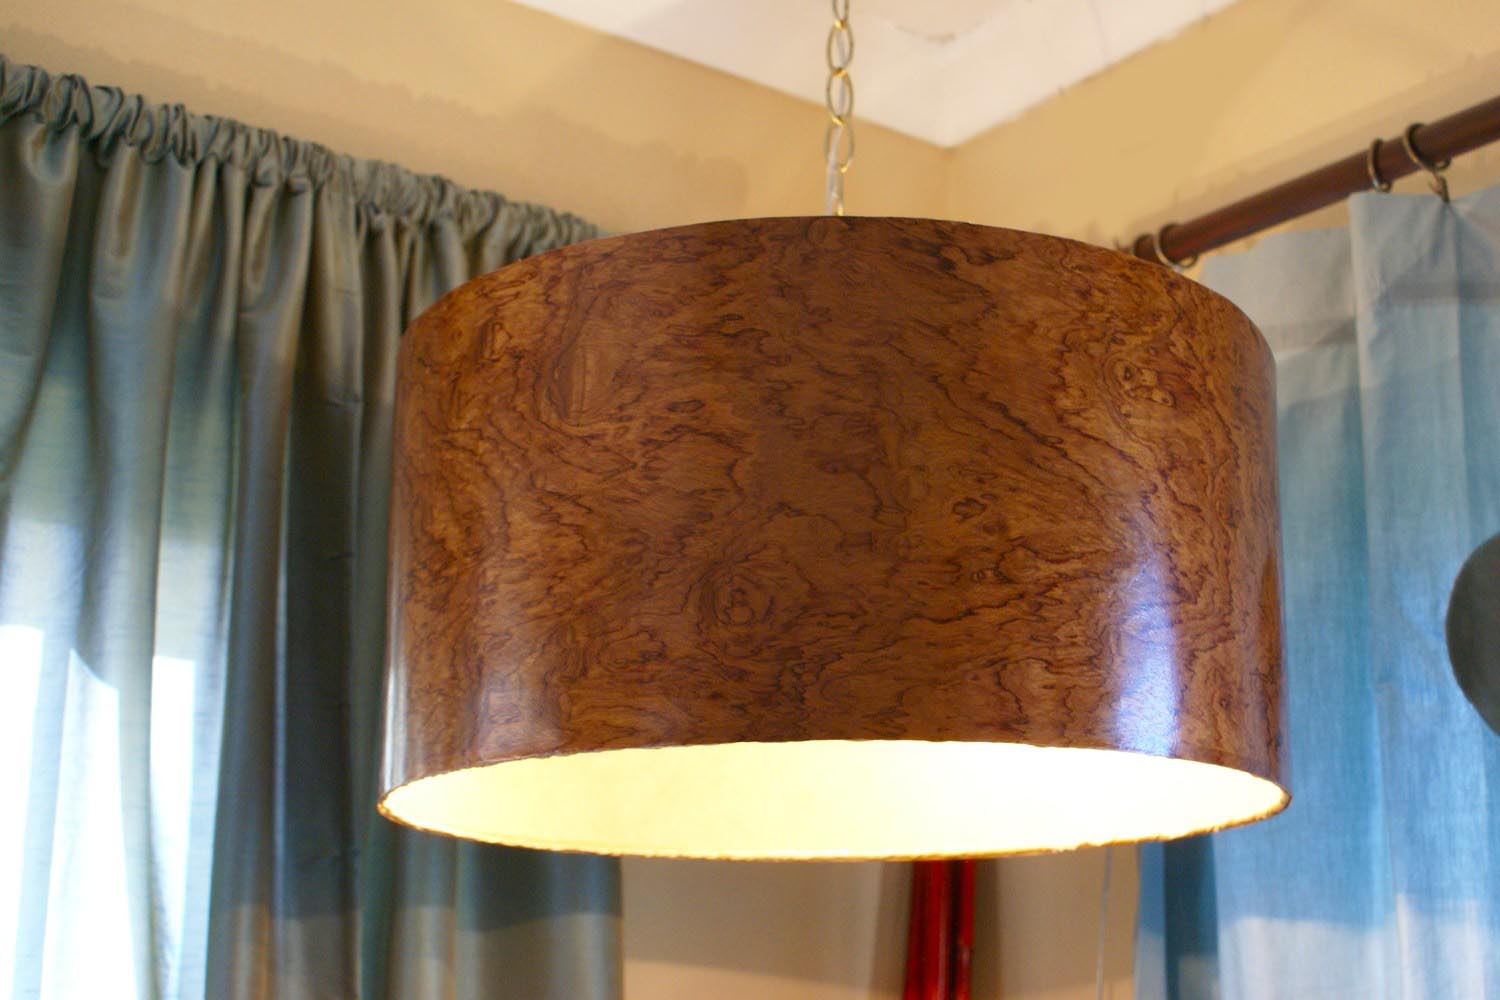 Large Drum Light Fixture